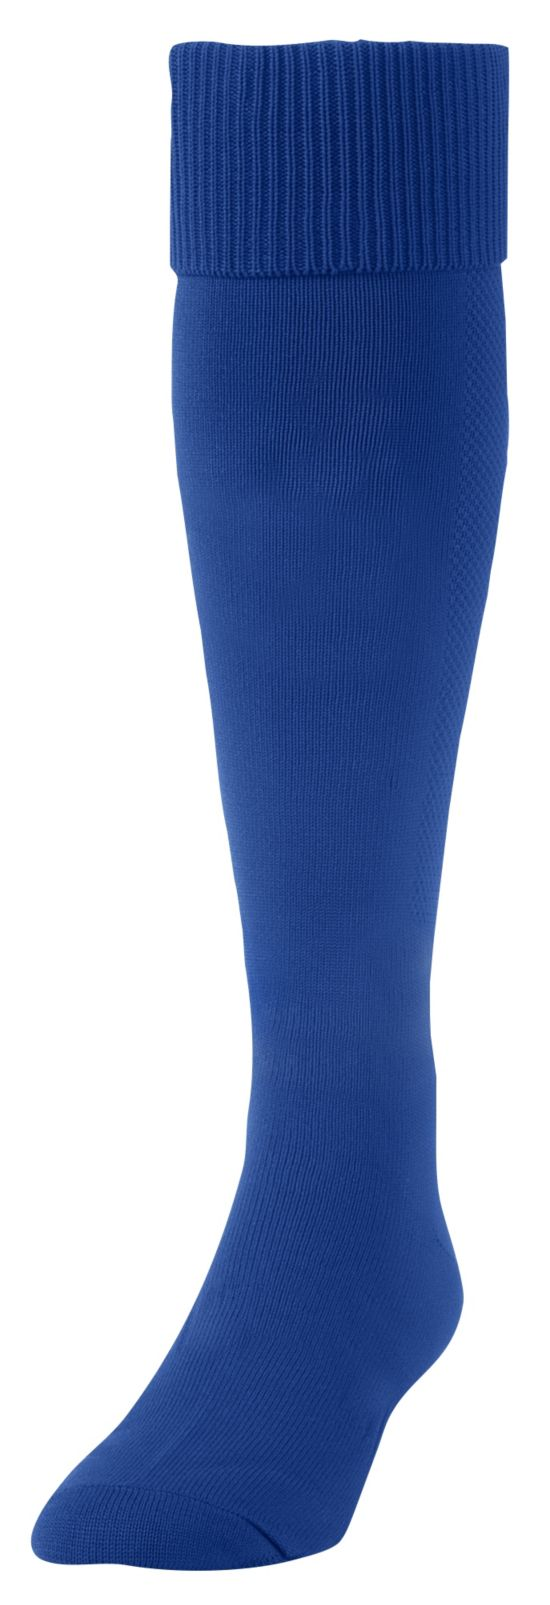 Serge Soccer Socks BLUE ROYAL